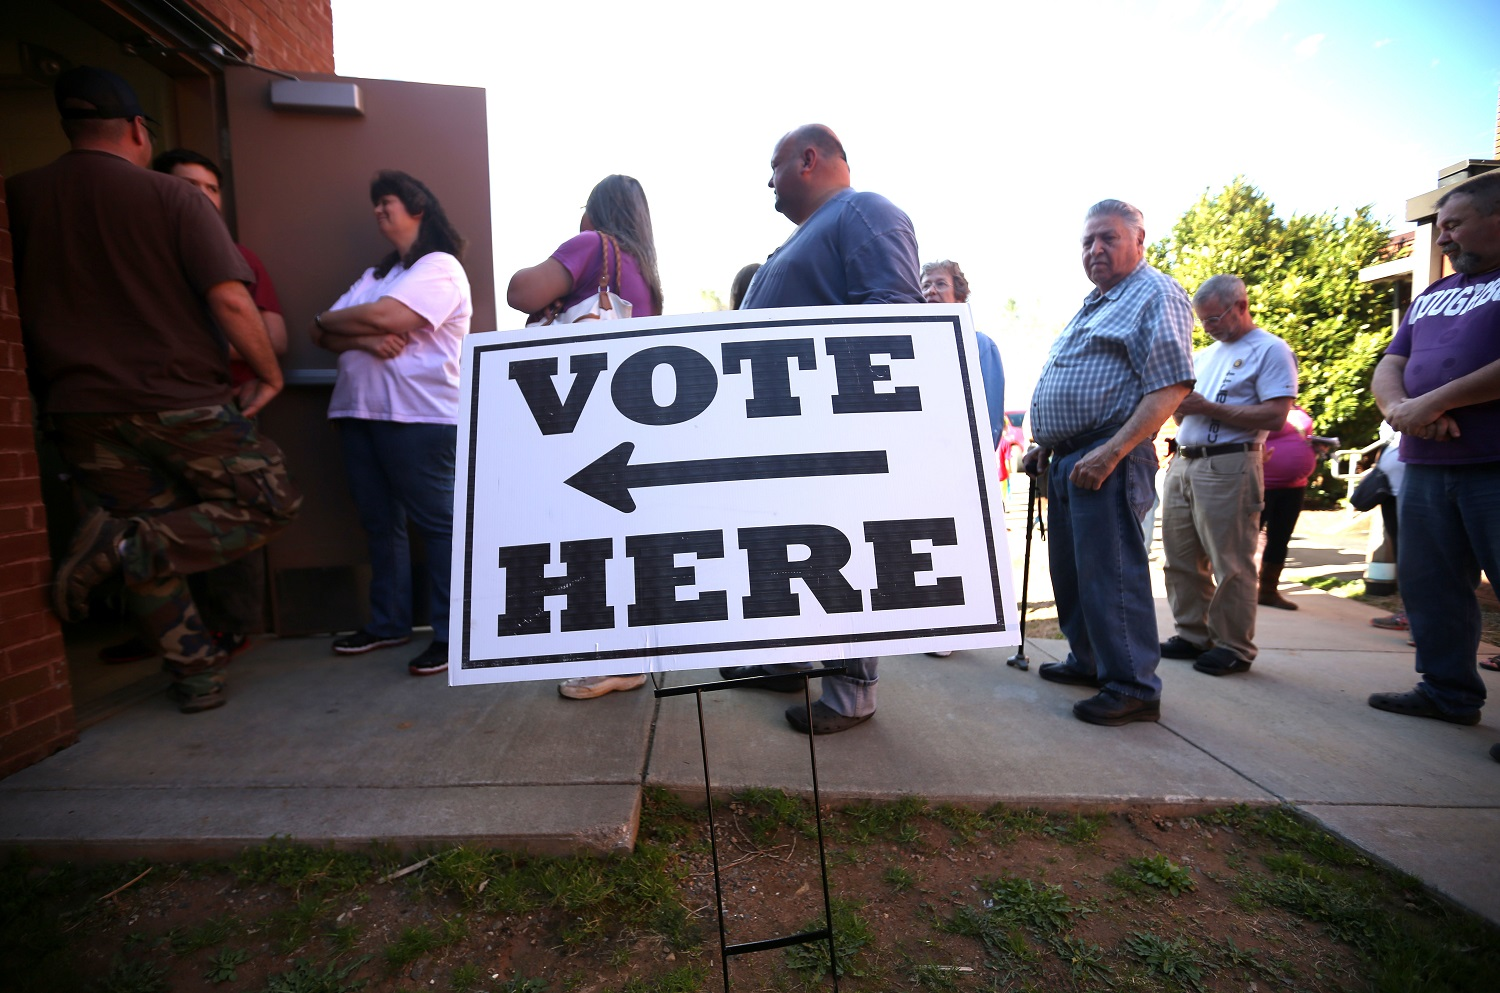 Voting can sometimes mean long waits in line